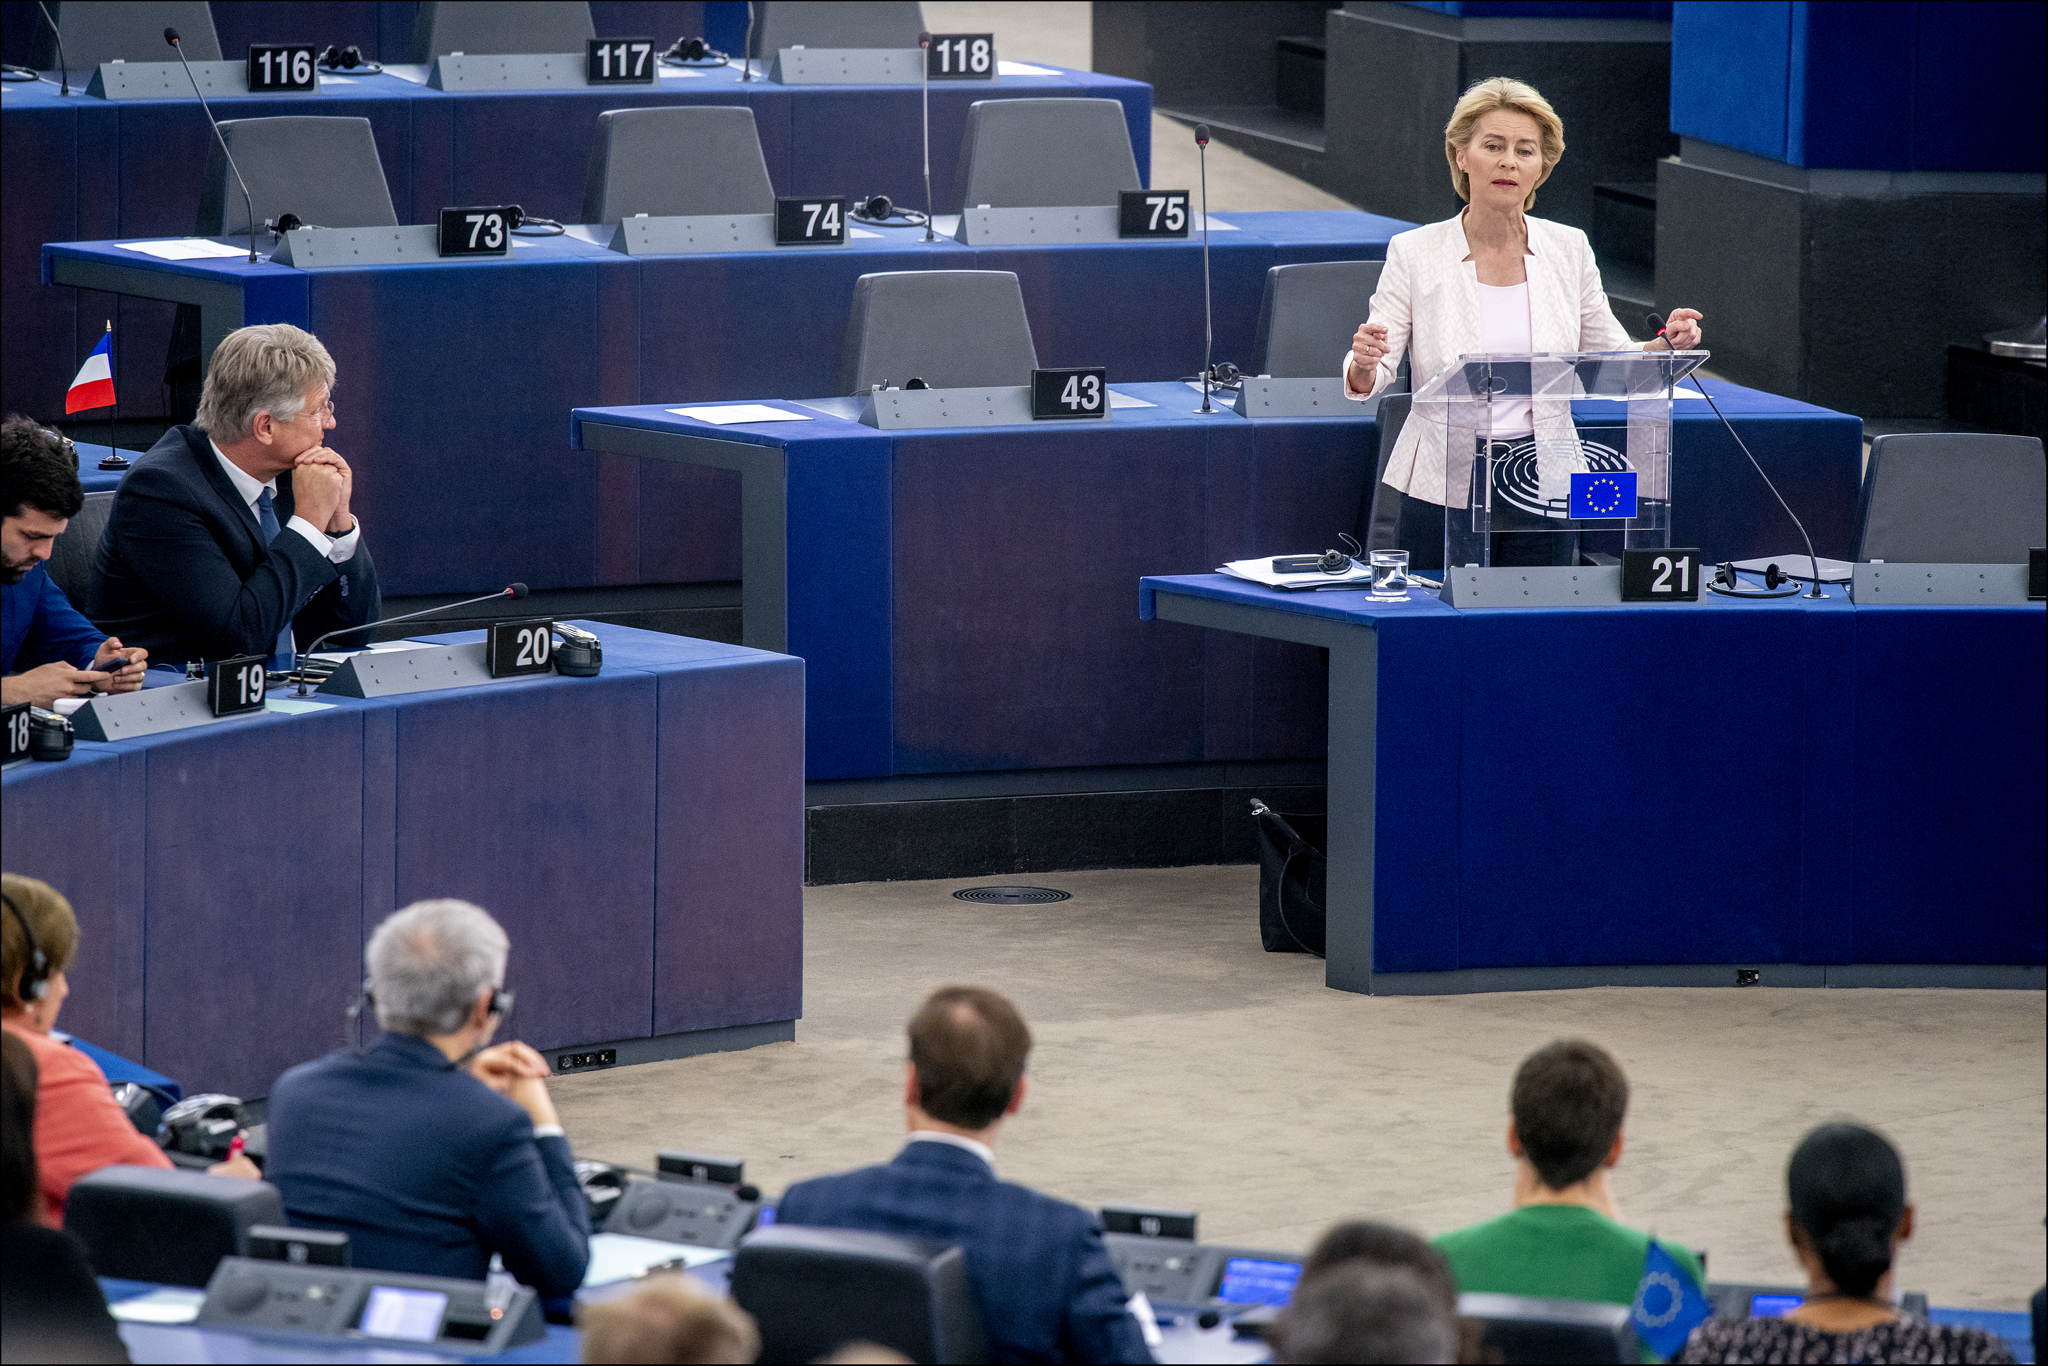 La presidente eletta della Commissione europea Ursula von der Leyen / © European Union 2019 – Source: EP